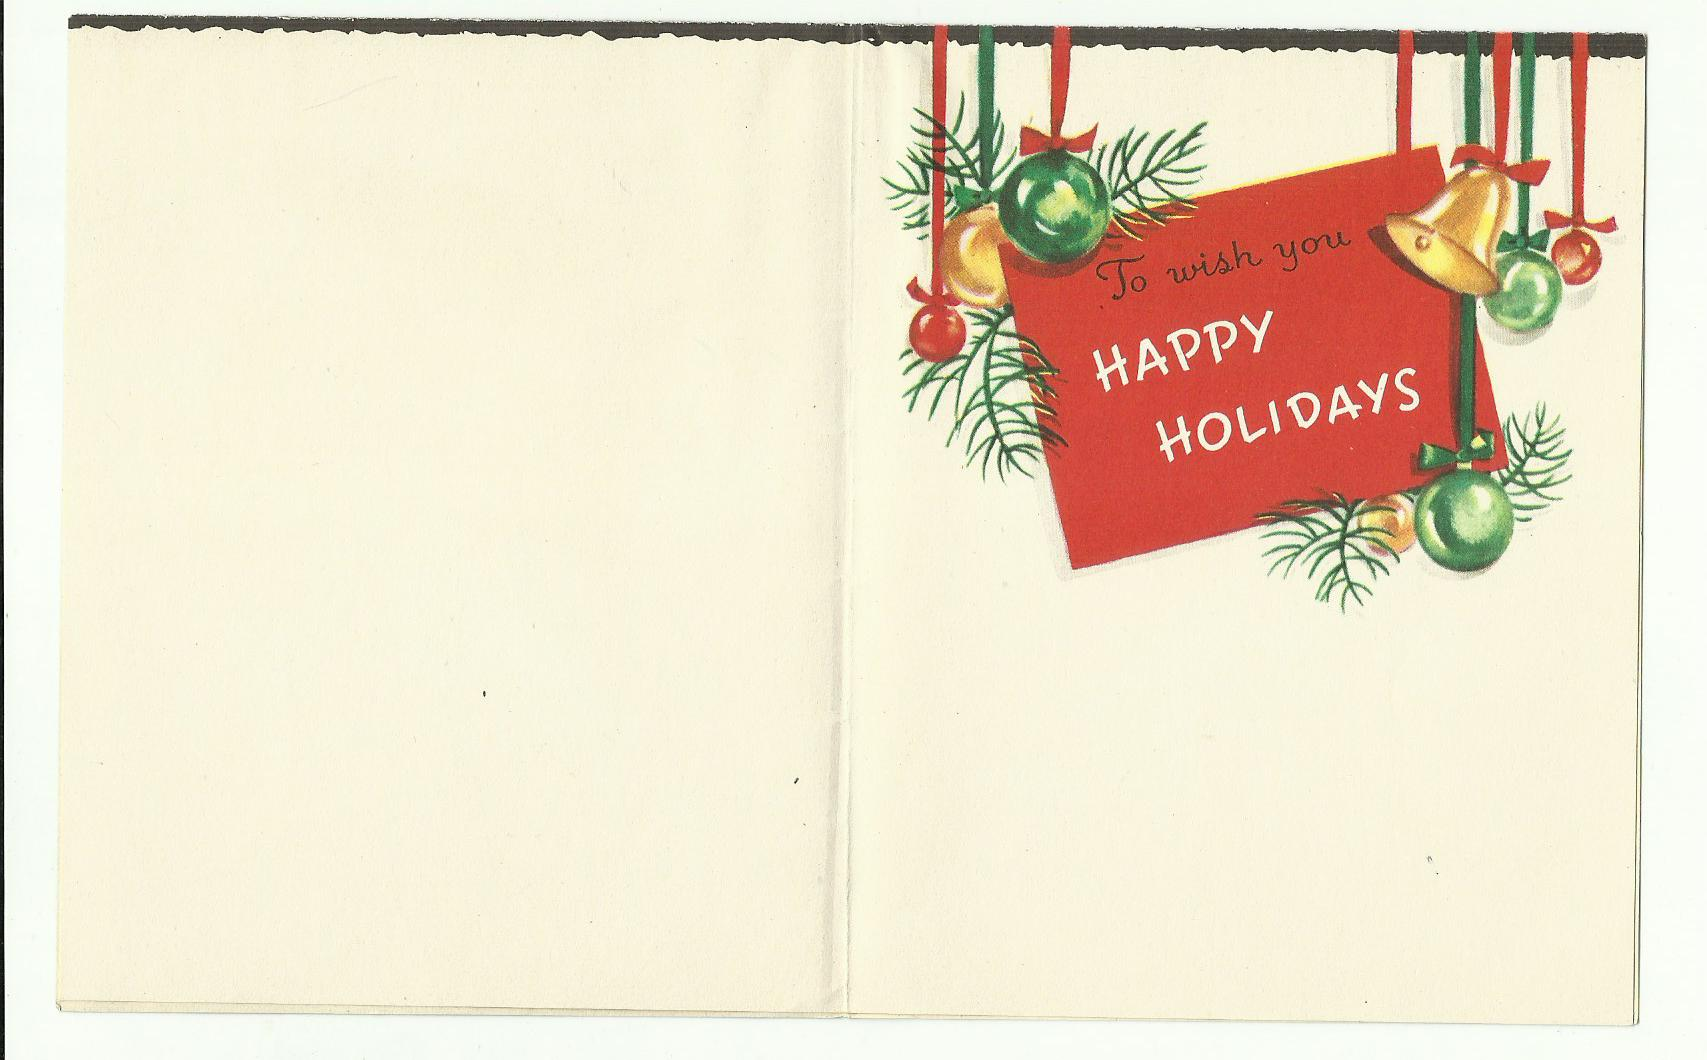 Unused vintage greetings of the season bright colors on black unused vintage greetings of the season bright colors on black christmas card envelope thumbnail kristyandbryce Gallery